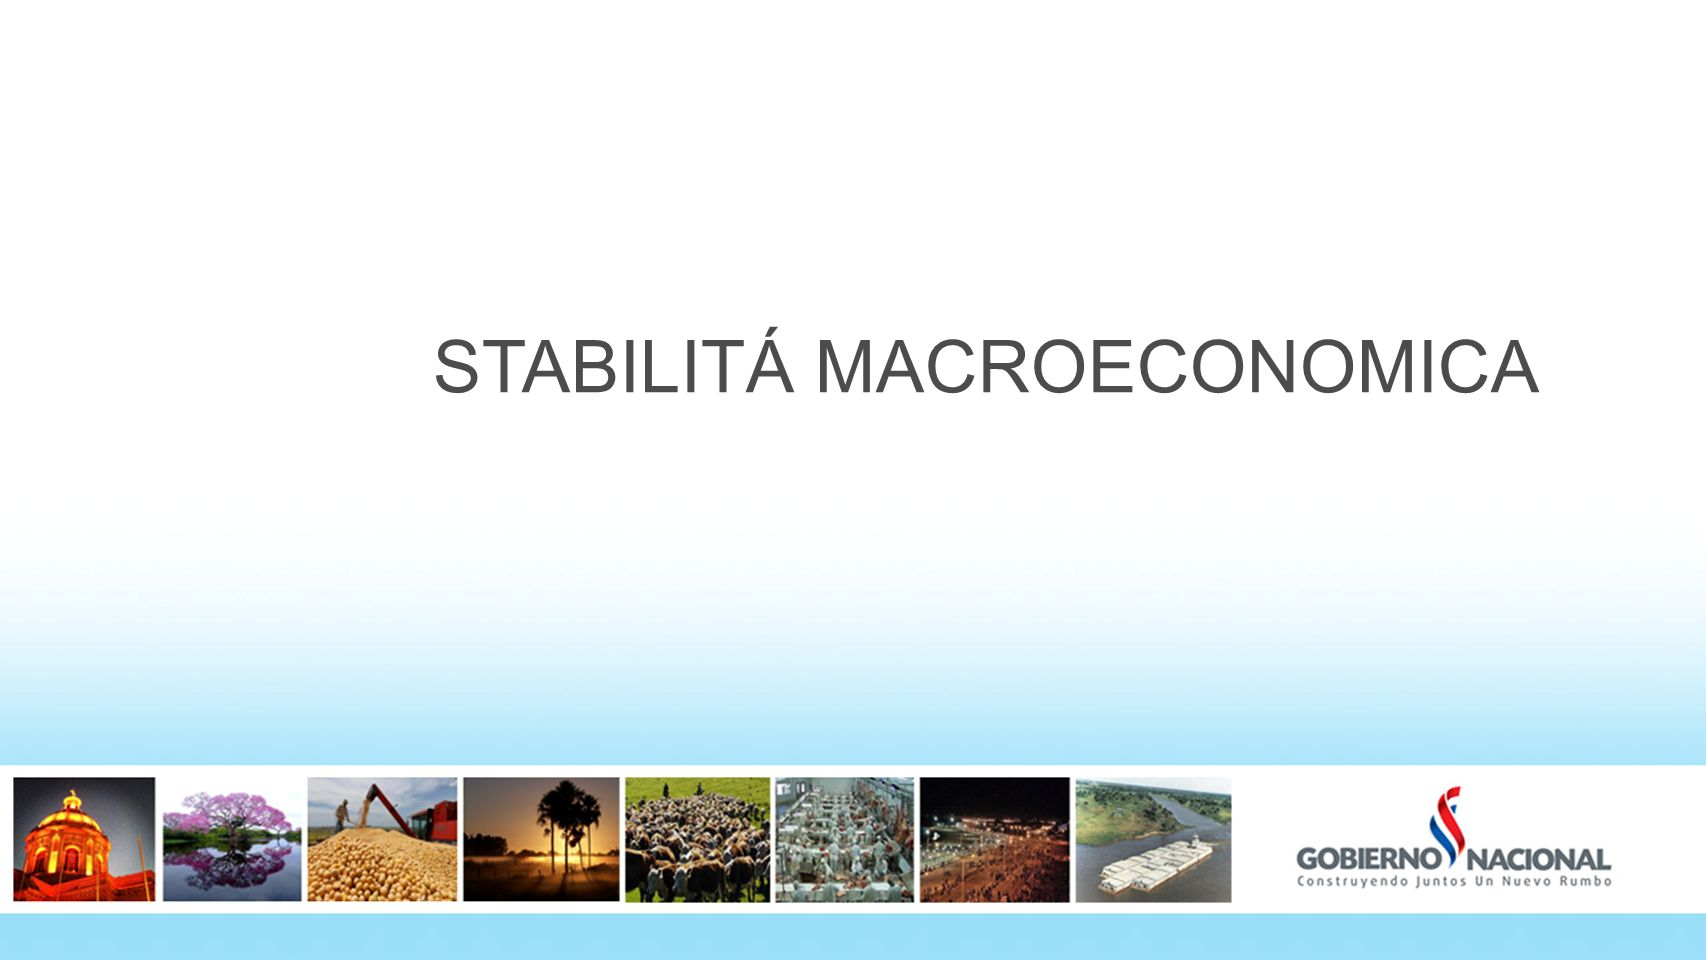 OPPORTUNITÁ Regime fiscale competitivo